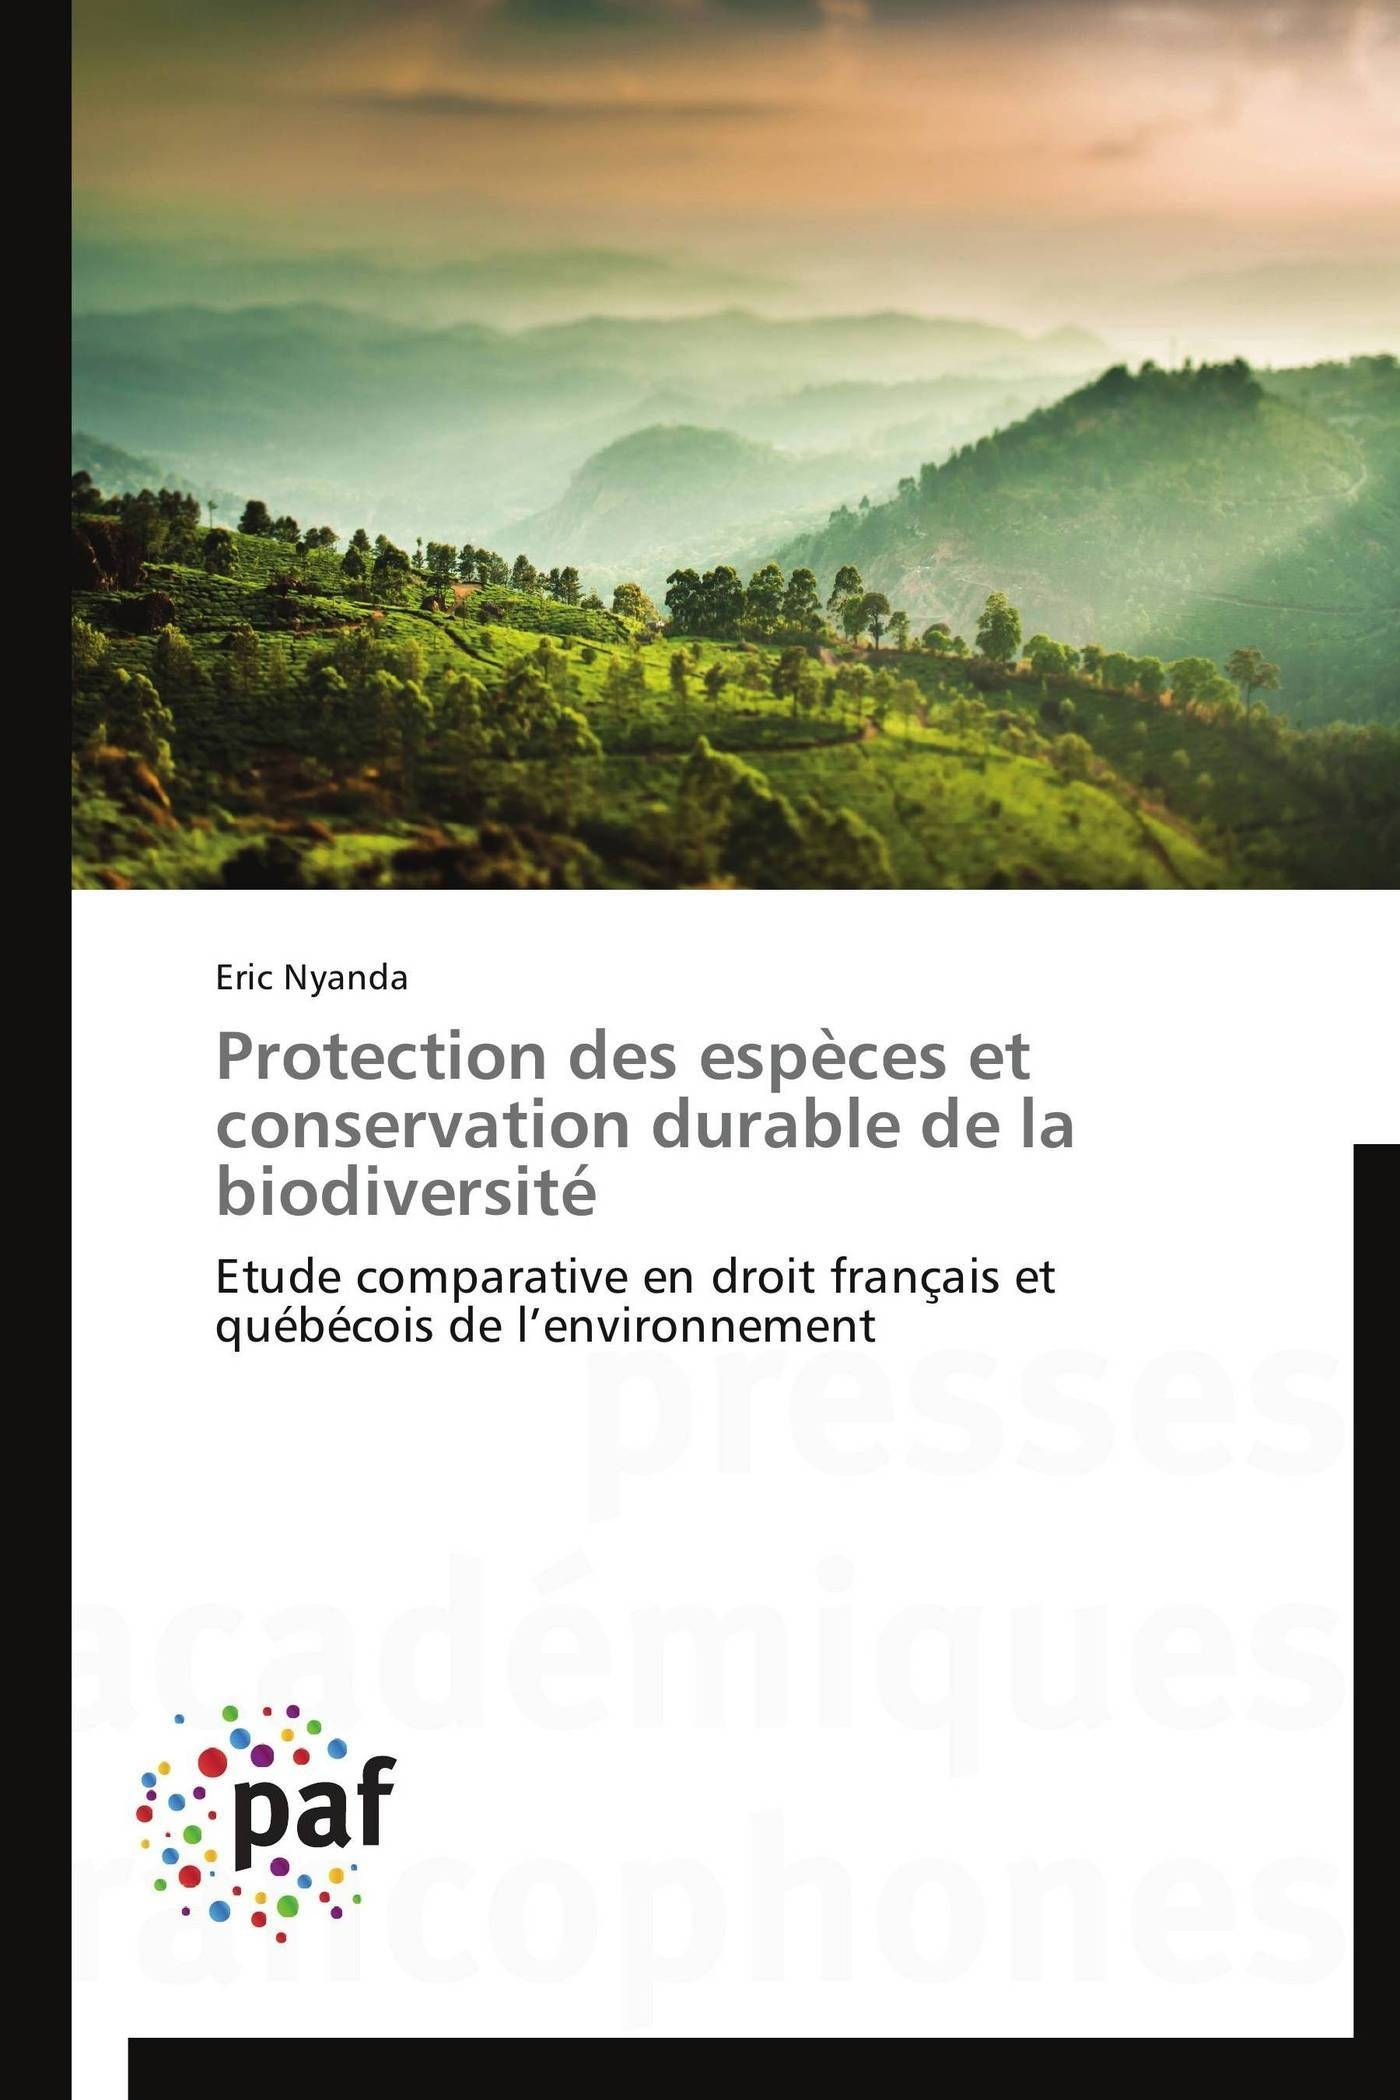 PROTECTION DES ESPECES ET CONSERVATION DURABLE DE LA BIODIVERSITE